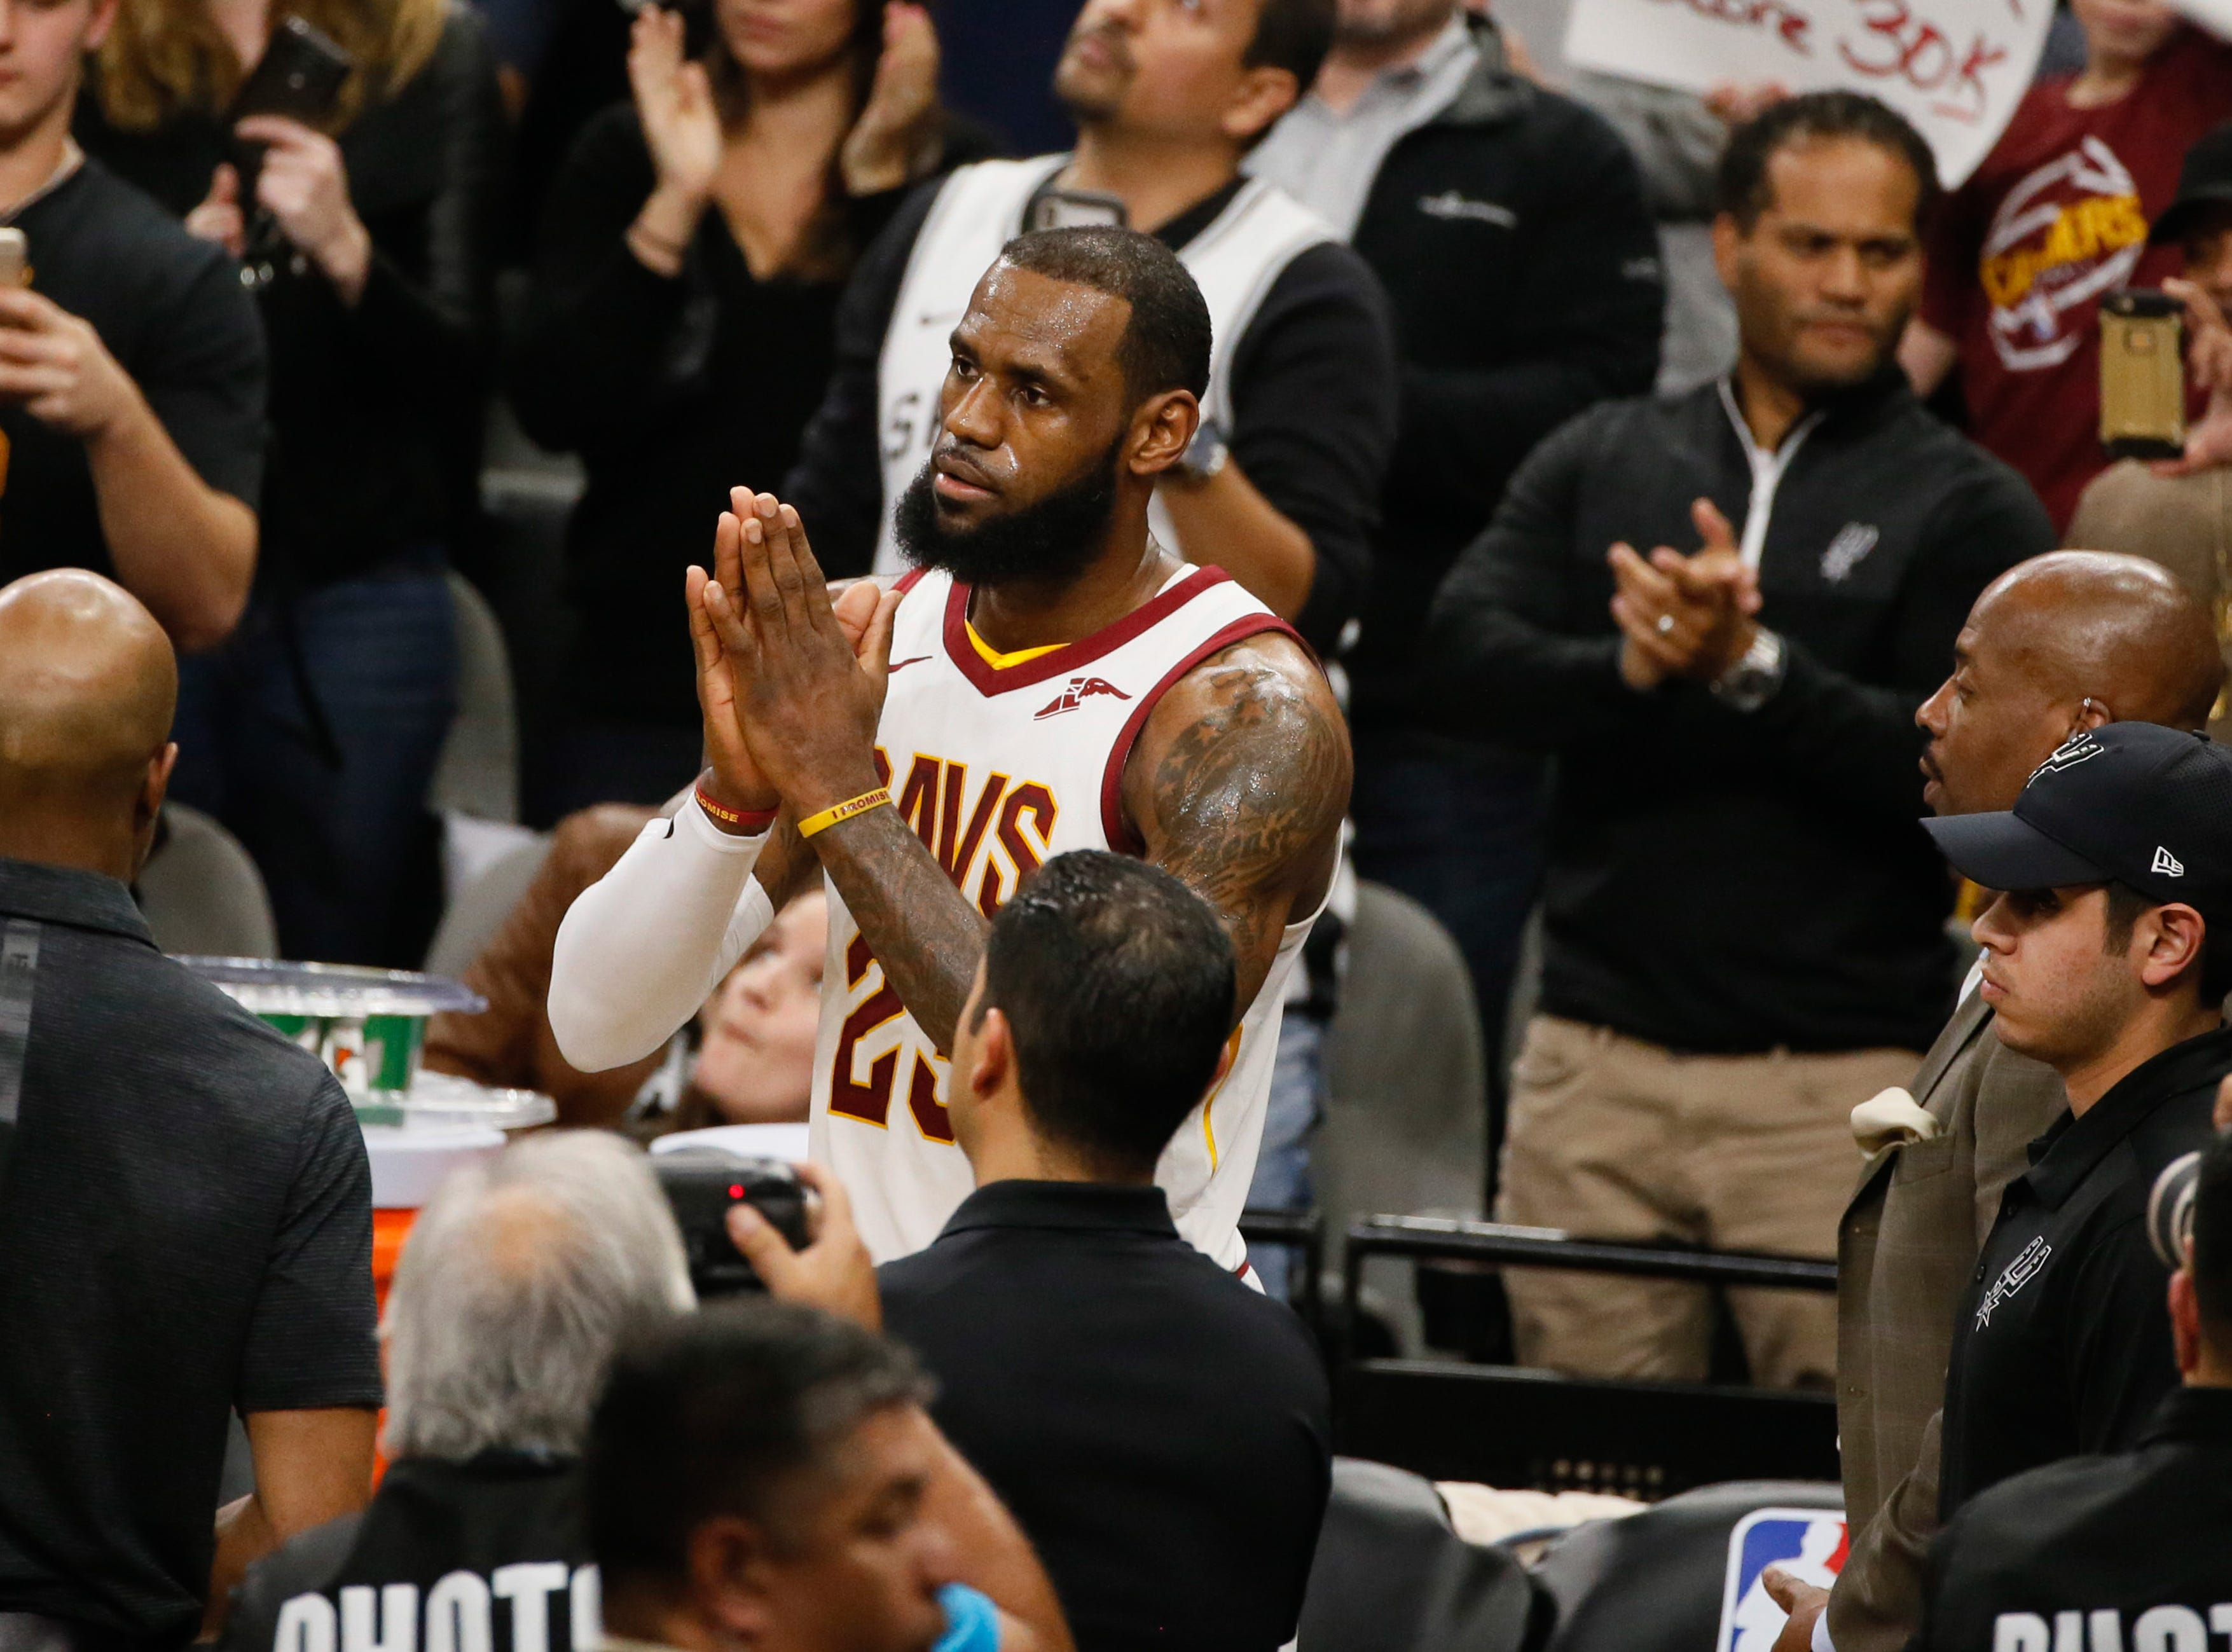 Jan. 23: Cleveland Cavaliers forward LeBron James salutes the crowd after scoring his 30,000th career point during a game against the San Antonio Spurs.